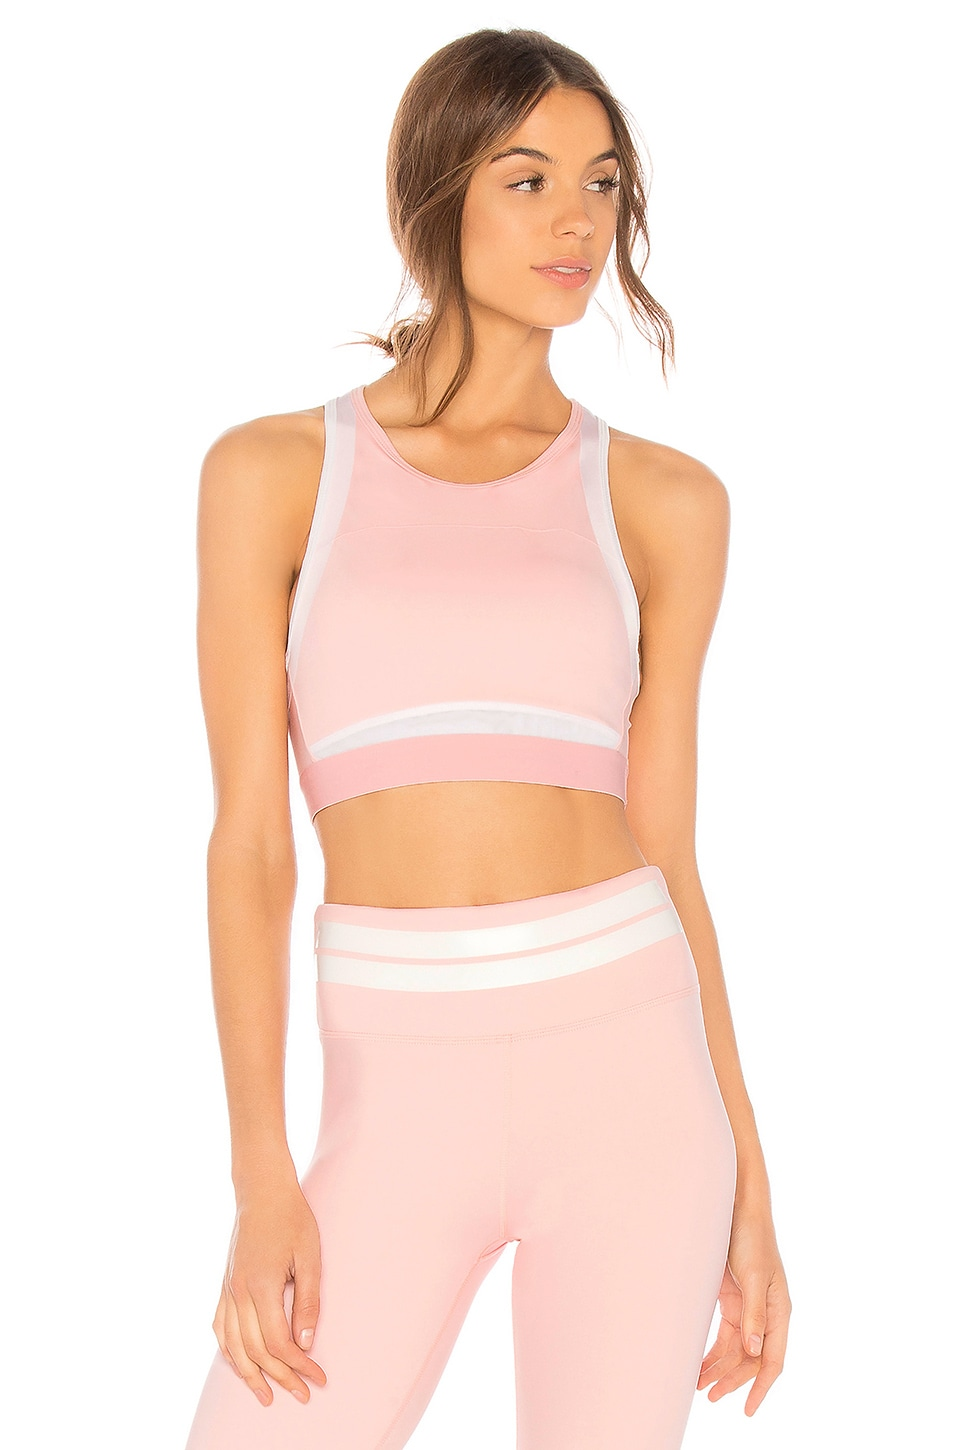 LILYBOD Petta Sports Bra in Pink